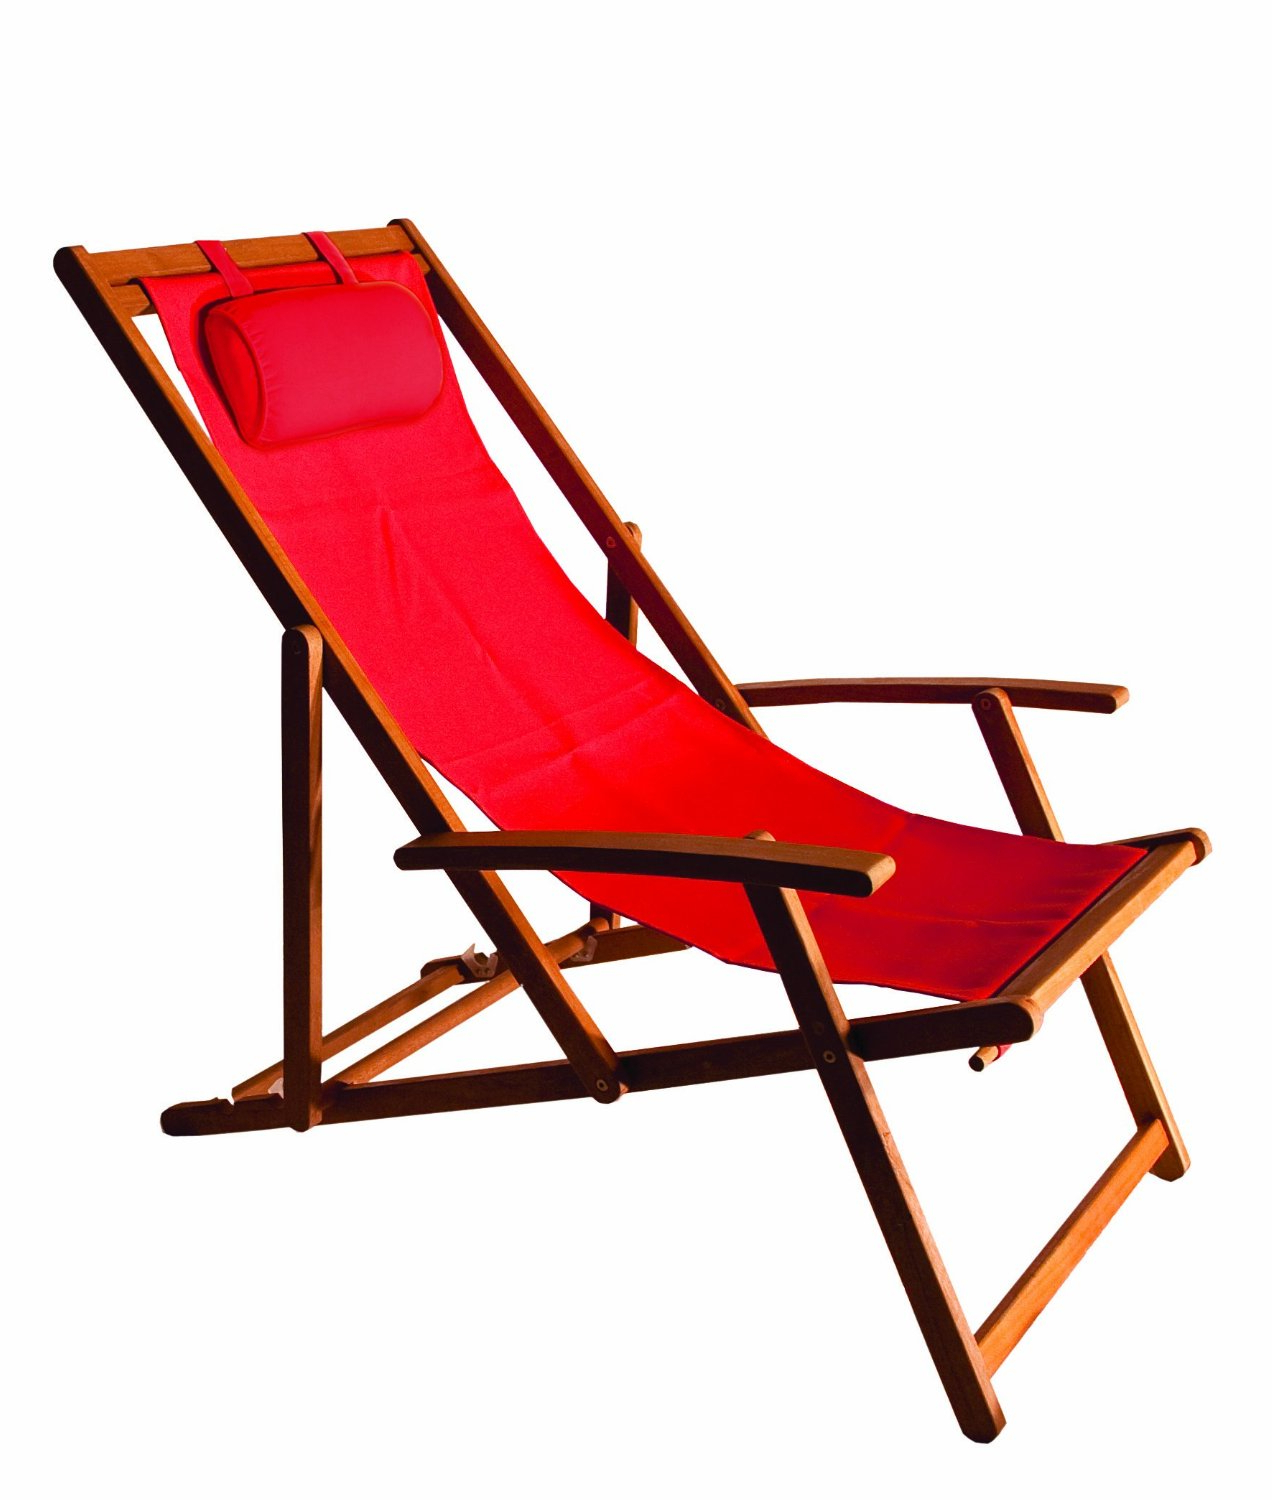 Cheap Outdoor Sling Chair Fabric, Find Outdoor Sling Chair For Well Known Outdoor Wood Sling Chairs (View 3 of 25)